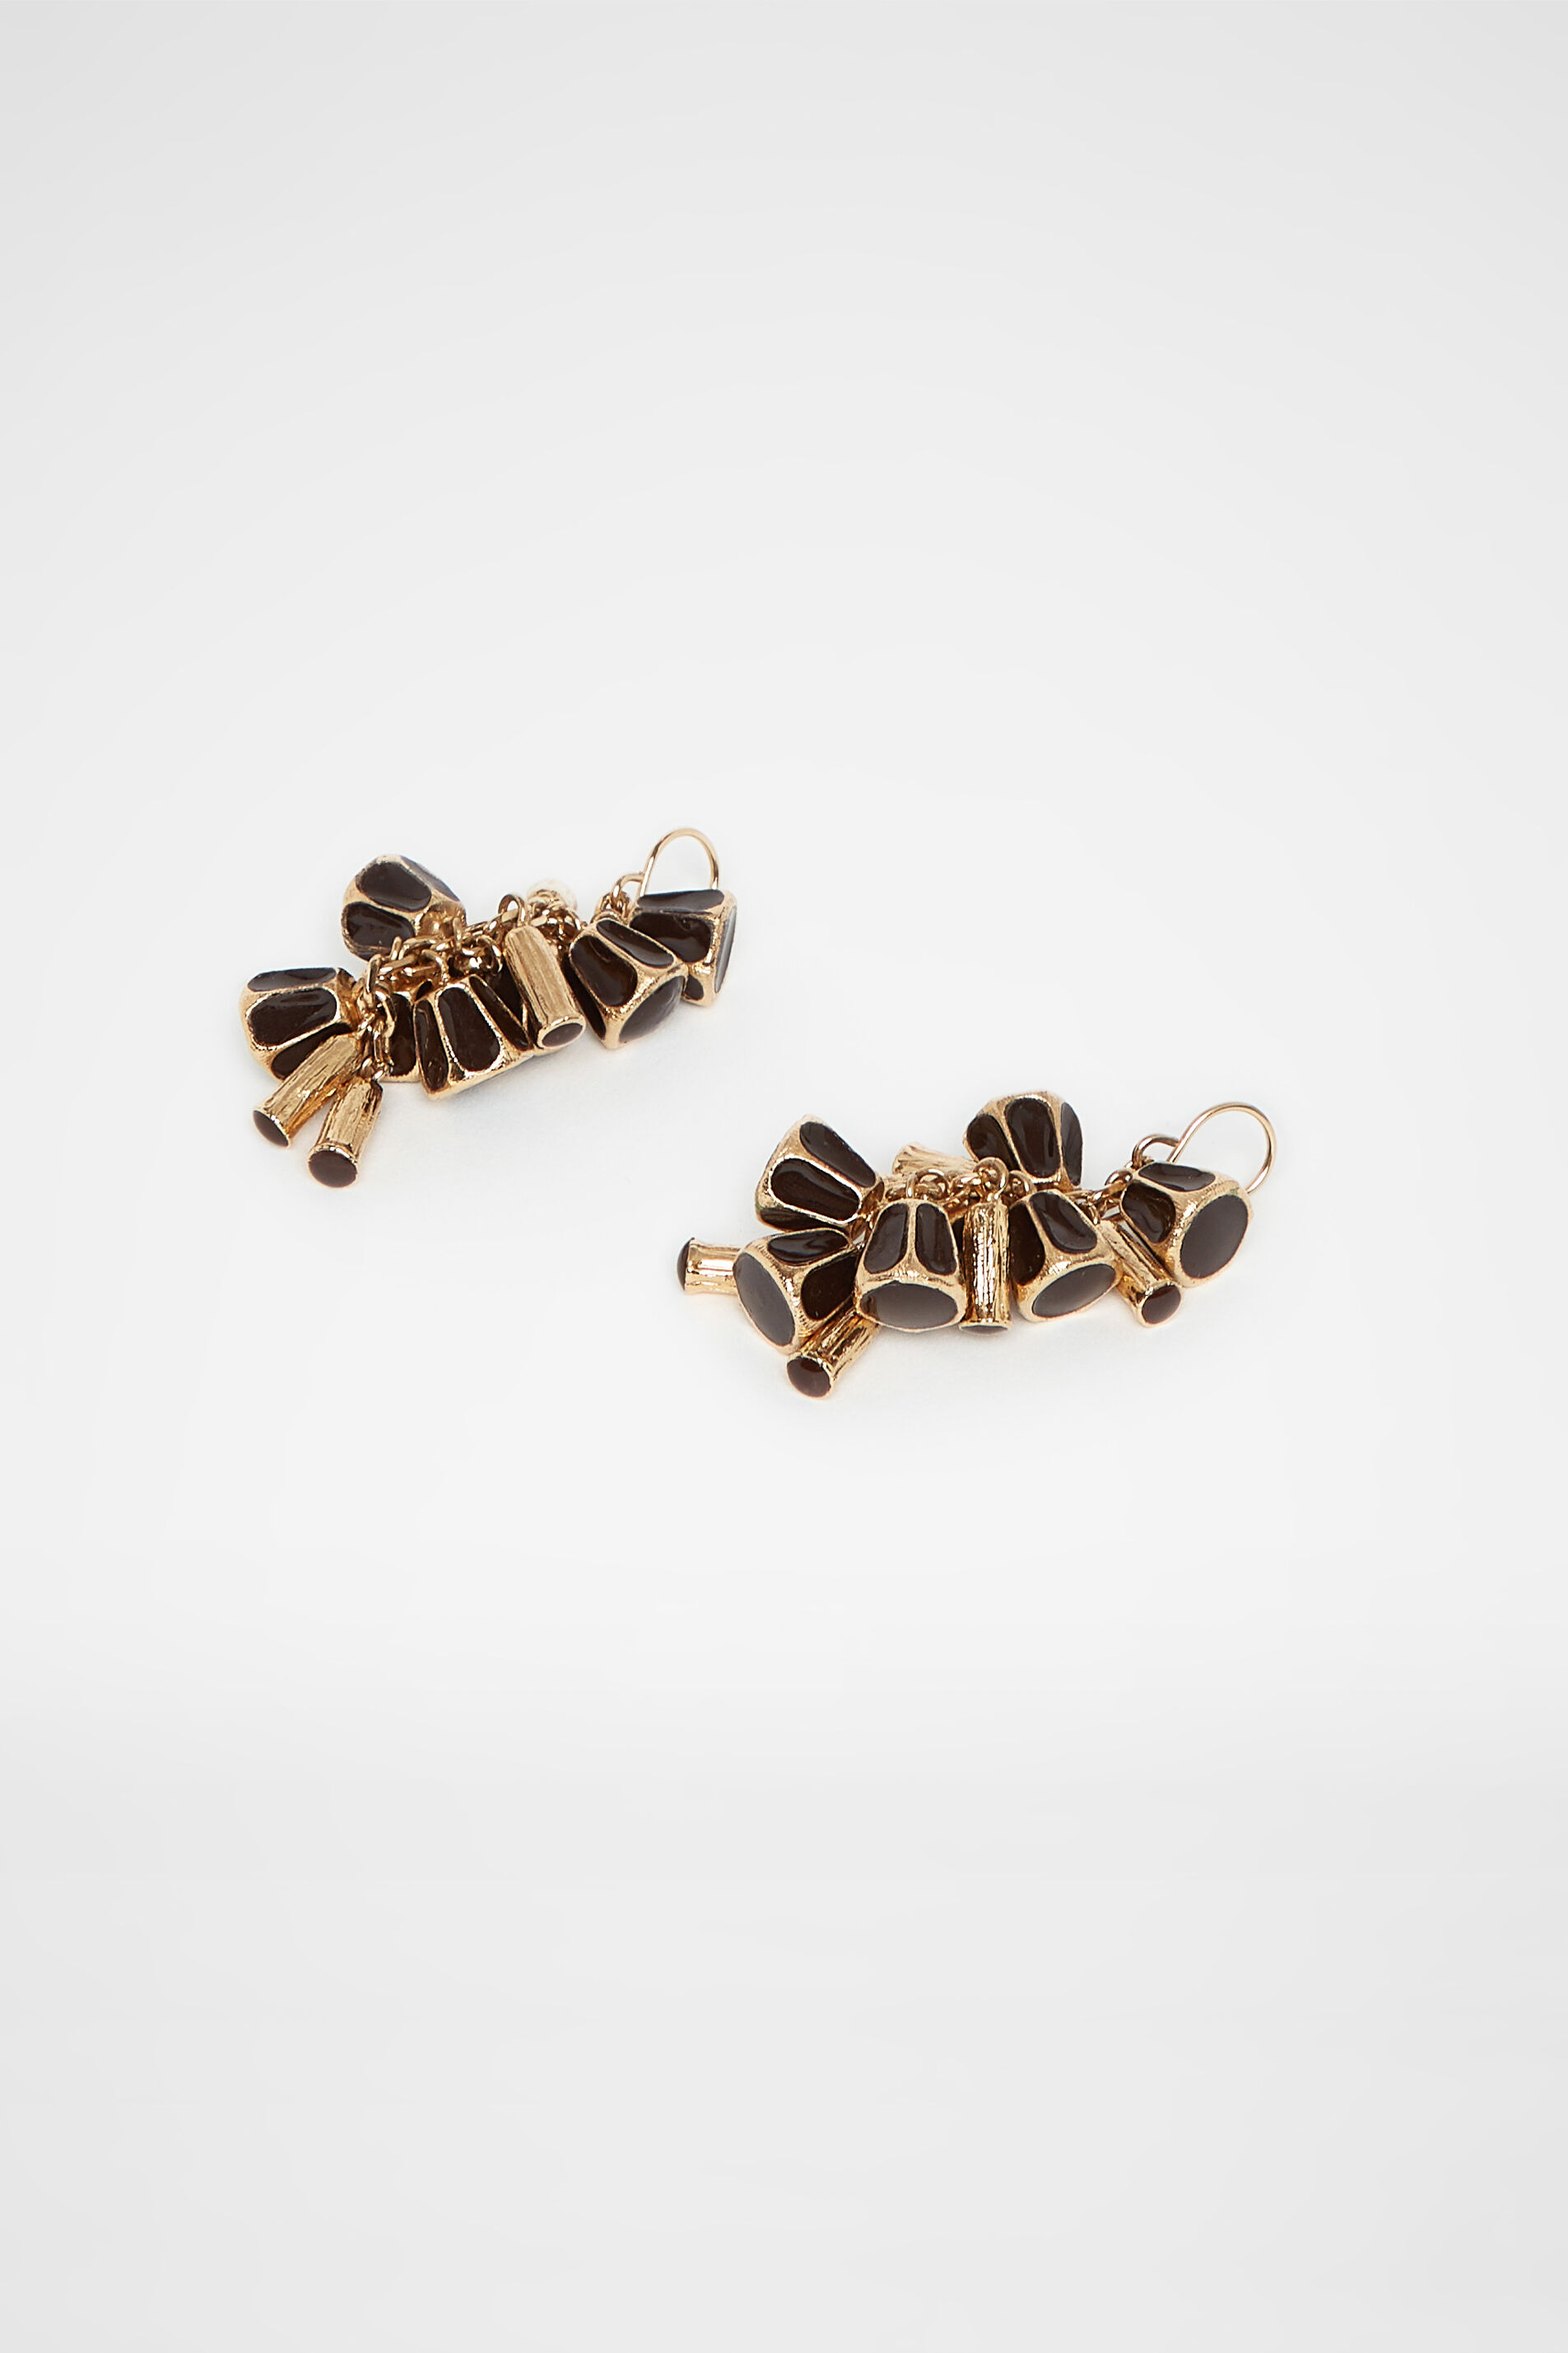 Earrings, dark brown, large